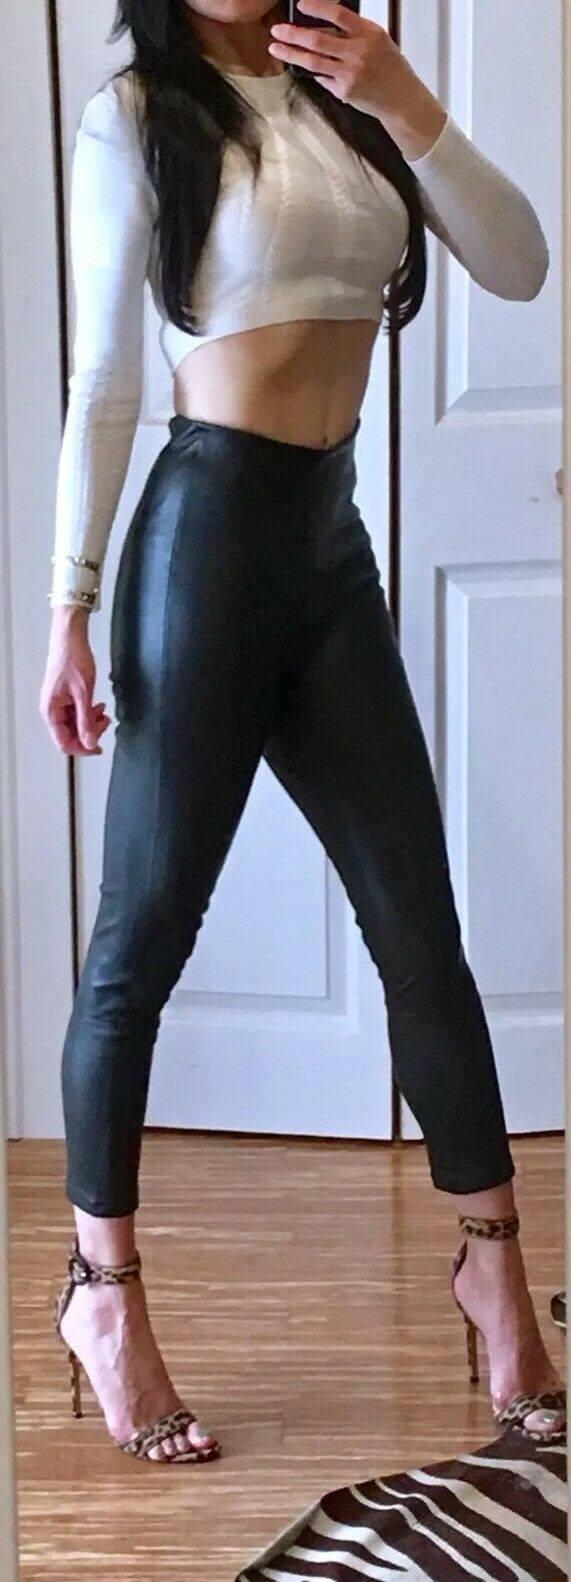 "1000 BY MALENE BIRGER ""ELANASOO"" HIGH-WAISTED LEATHER LEGGING, SZ DK 34 US 0-2"